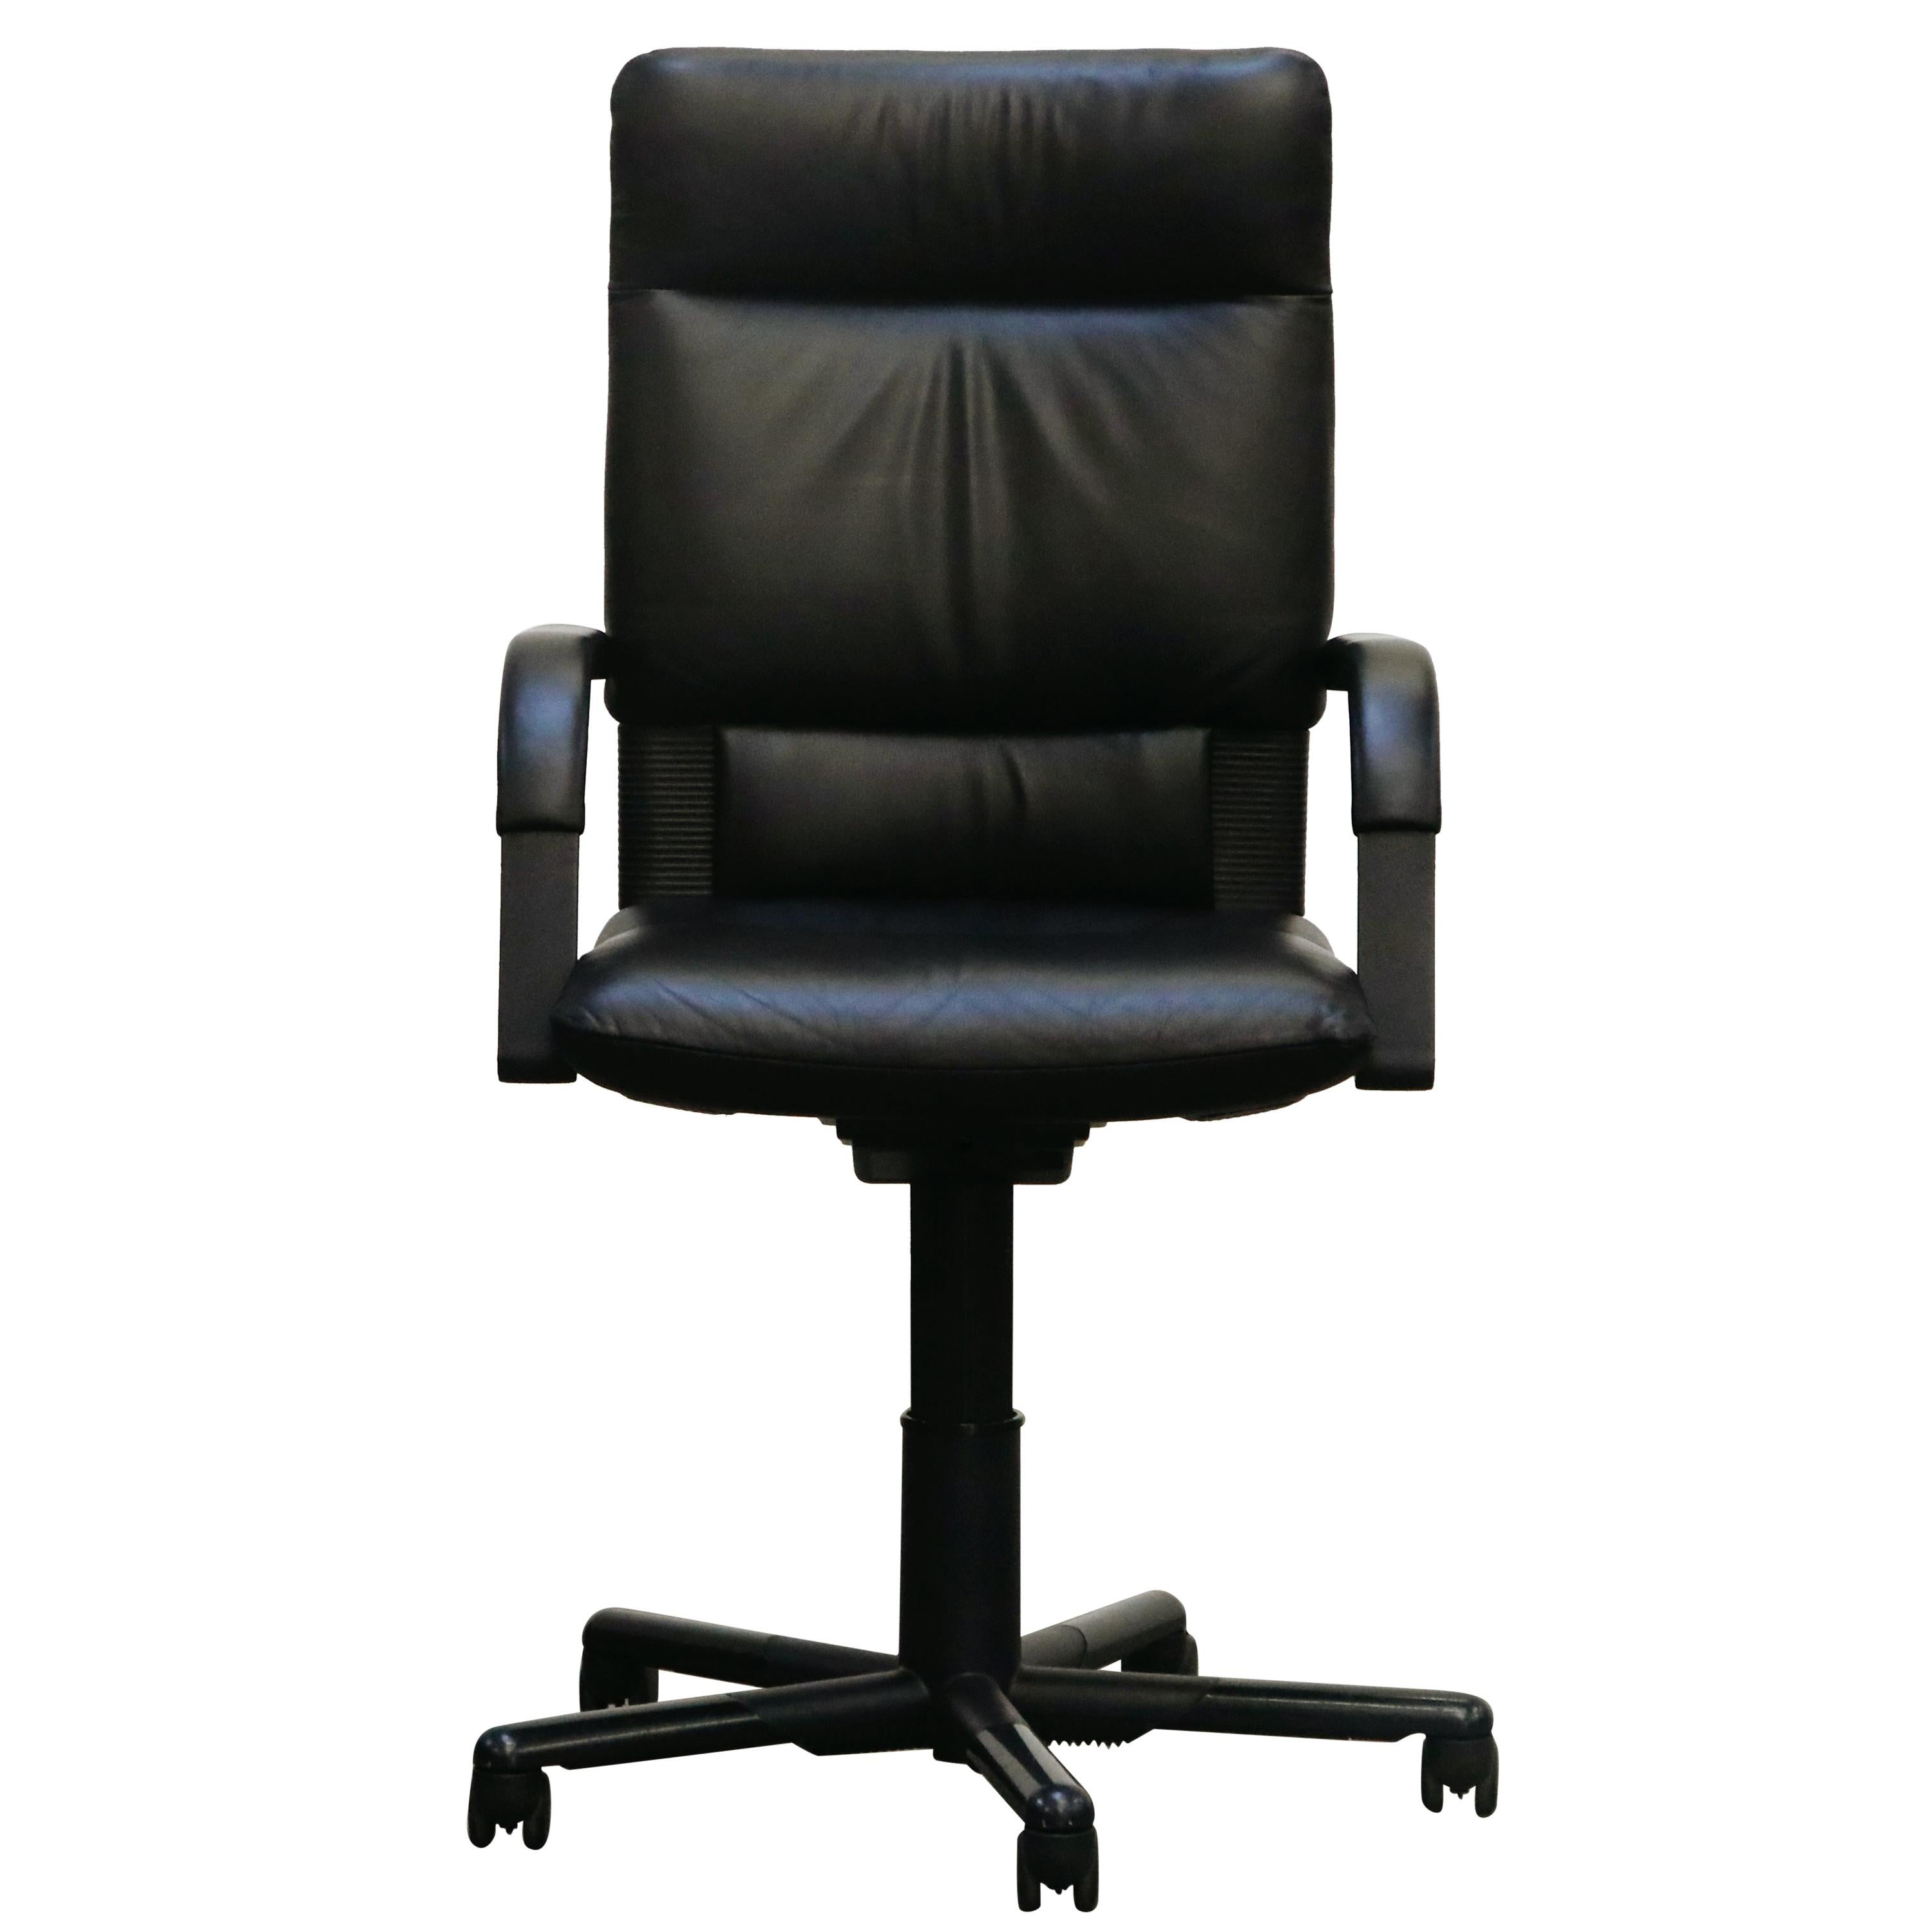 Mario Bellini Post-Modern Highback Desk Chair for Vitra, Signed and Dated 1993